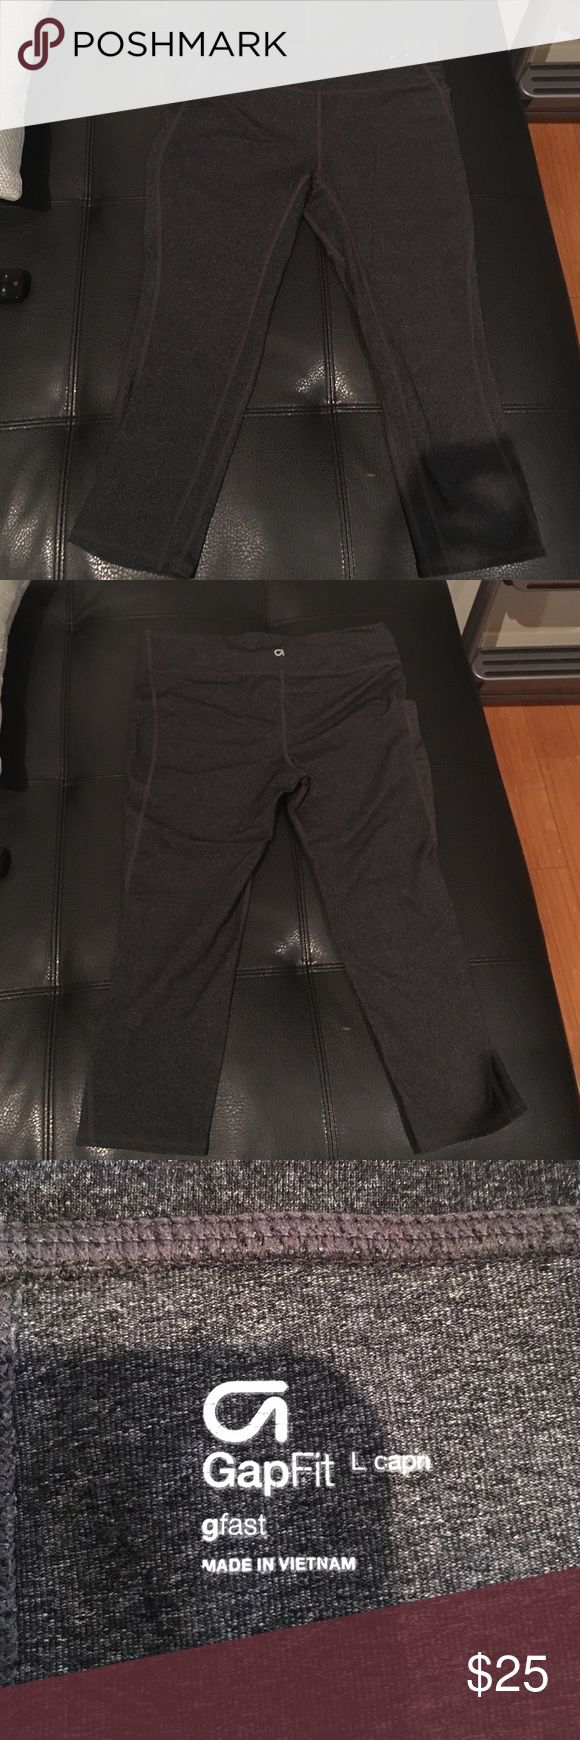 GapFit gfast Capri legging The perfect workout cropped legging in charcoal grey. Nylon/polyester/spandex blend. Like new, worn once or twice. GAP Pants Leggings